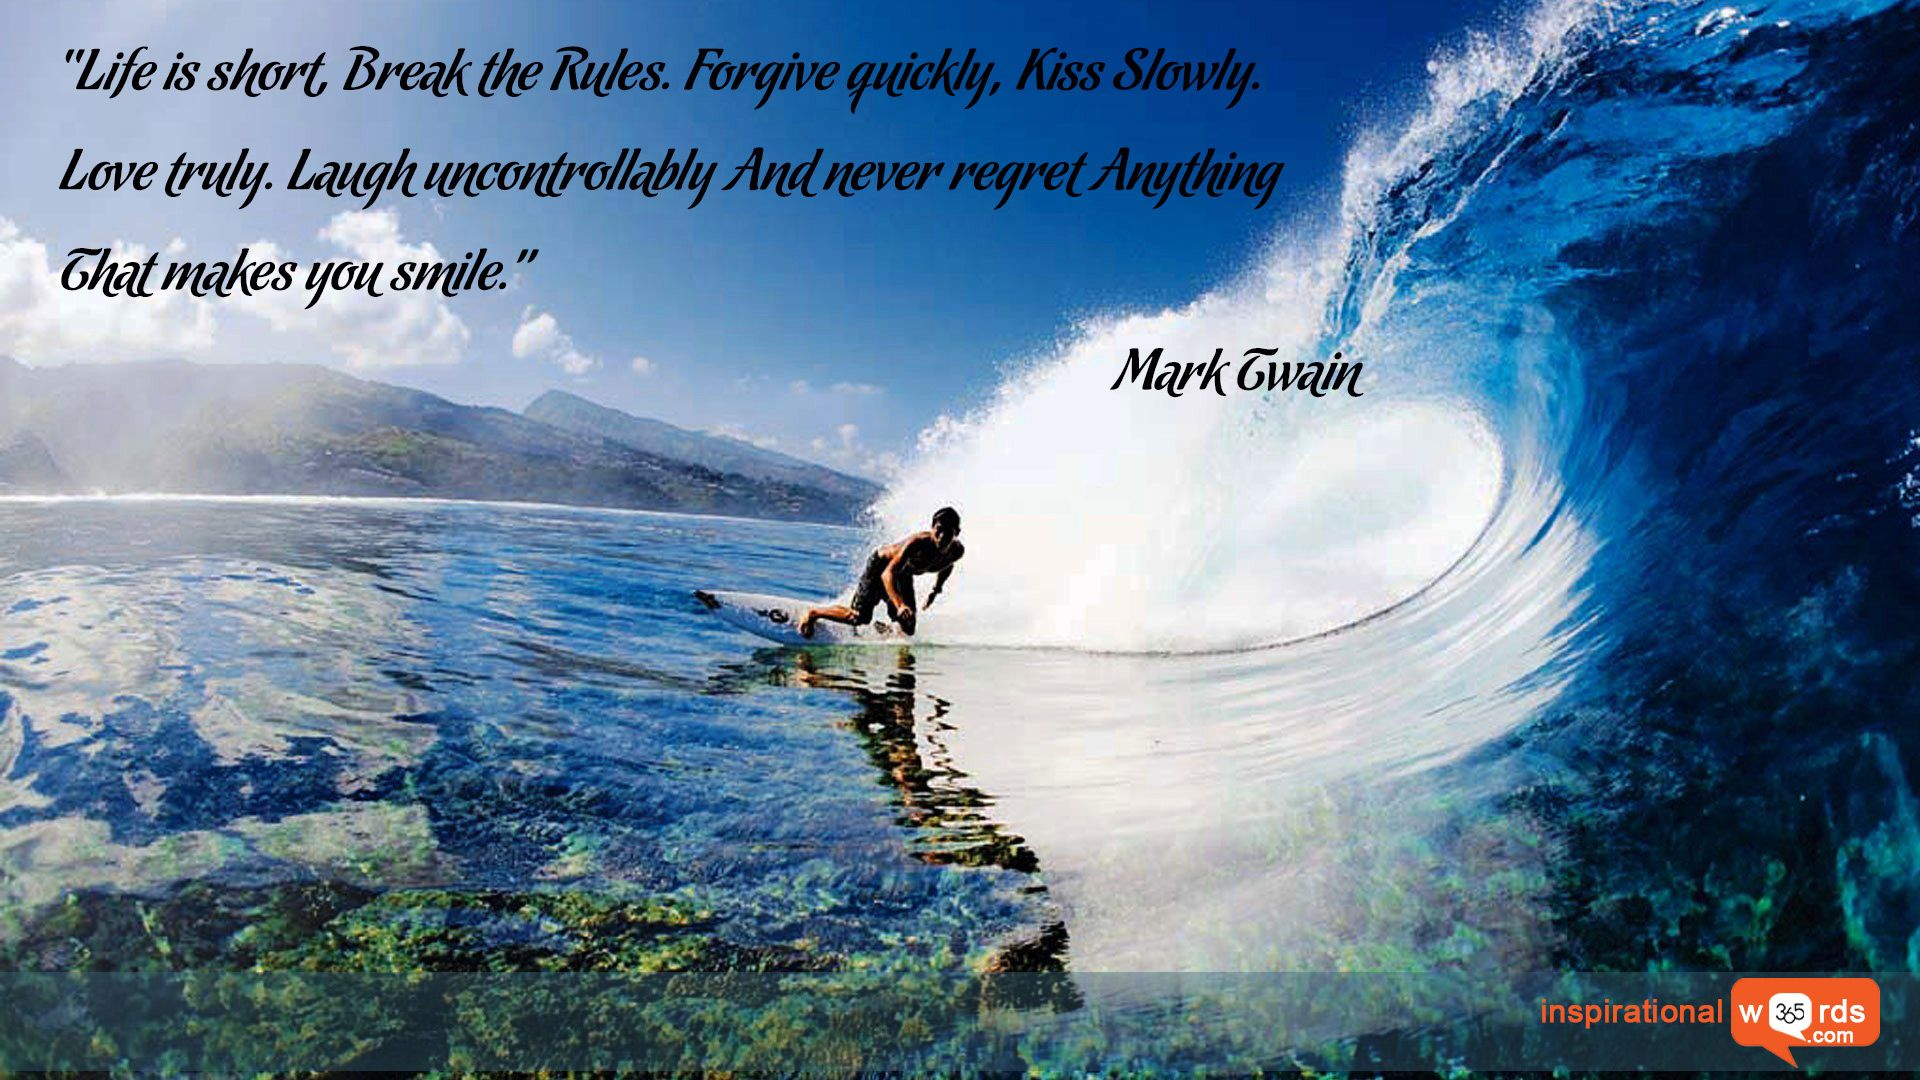 Inspirational Wallpaper Quote By Mark Twain Life Is Short Break The Rules Forgive Quickly Kiss Slowly Love Truly L Surfing Pictures Surfing Surfing Waves